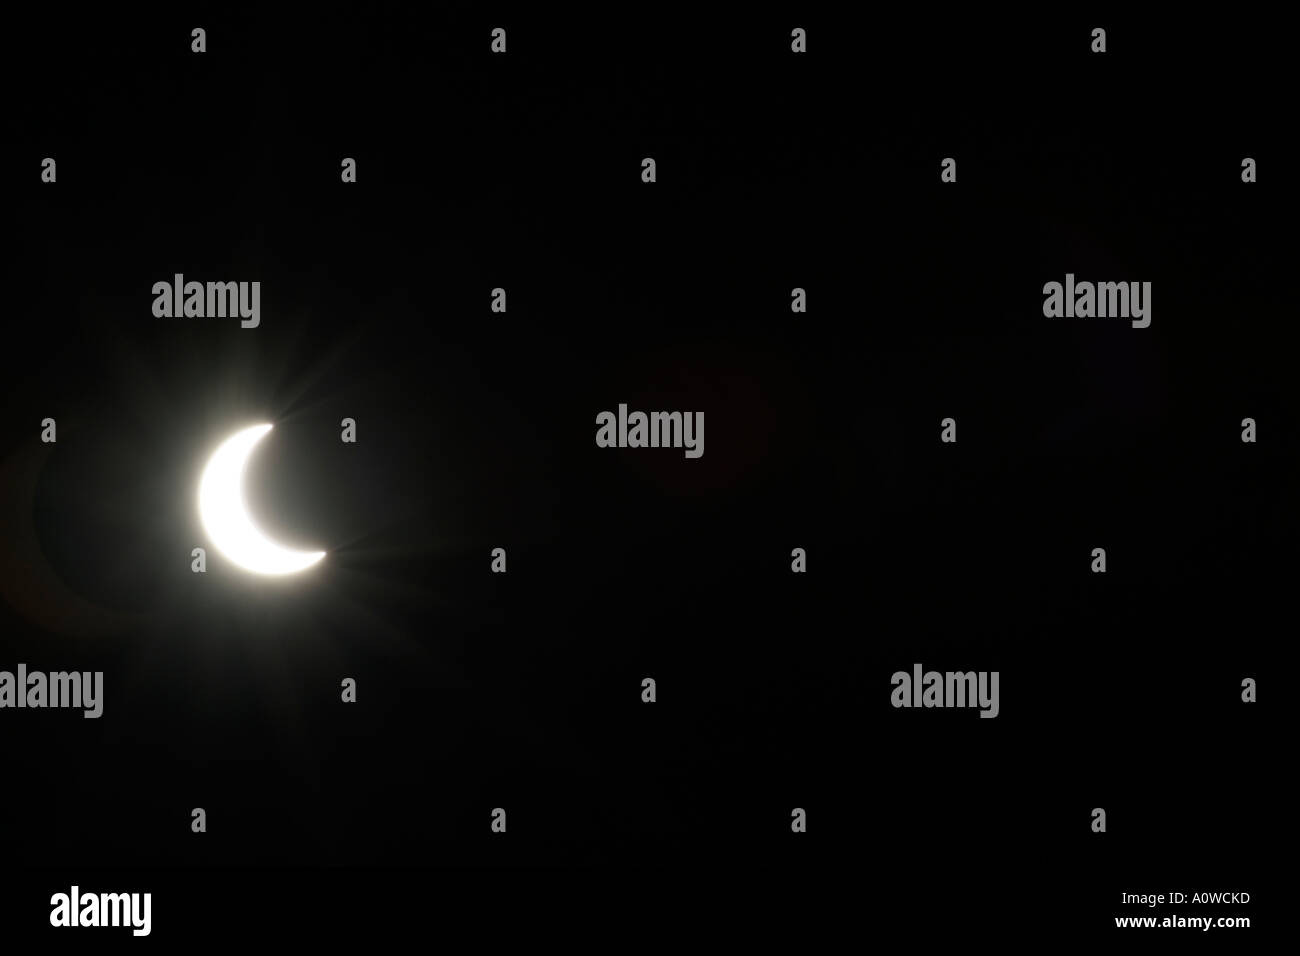 Solar eclipse / half or crescent moon in the night sky. - Stock Image